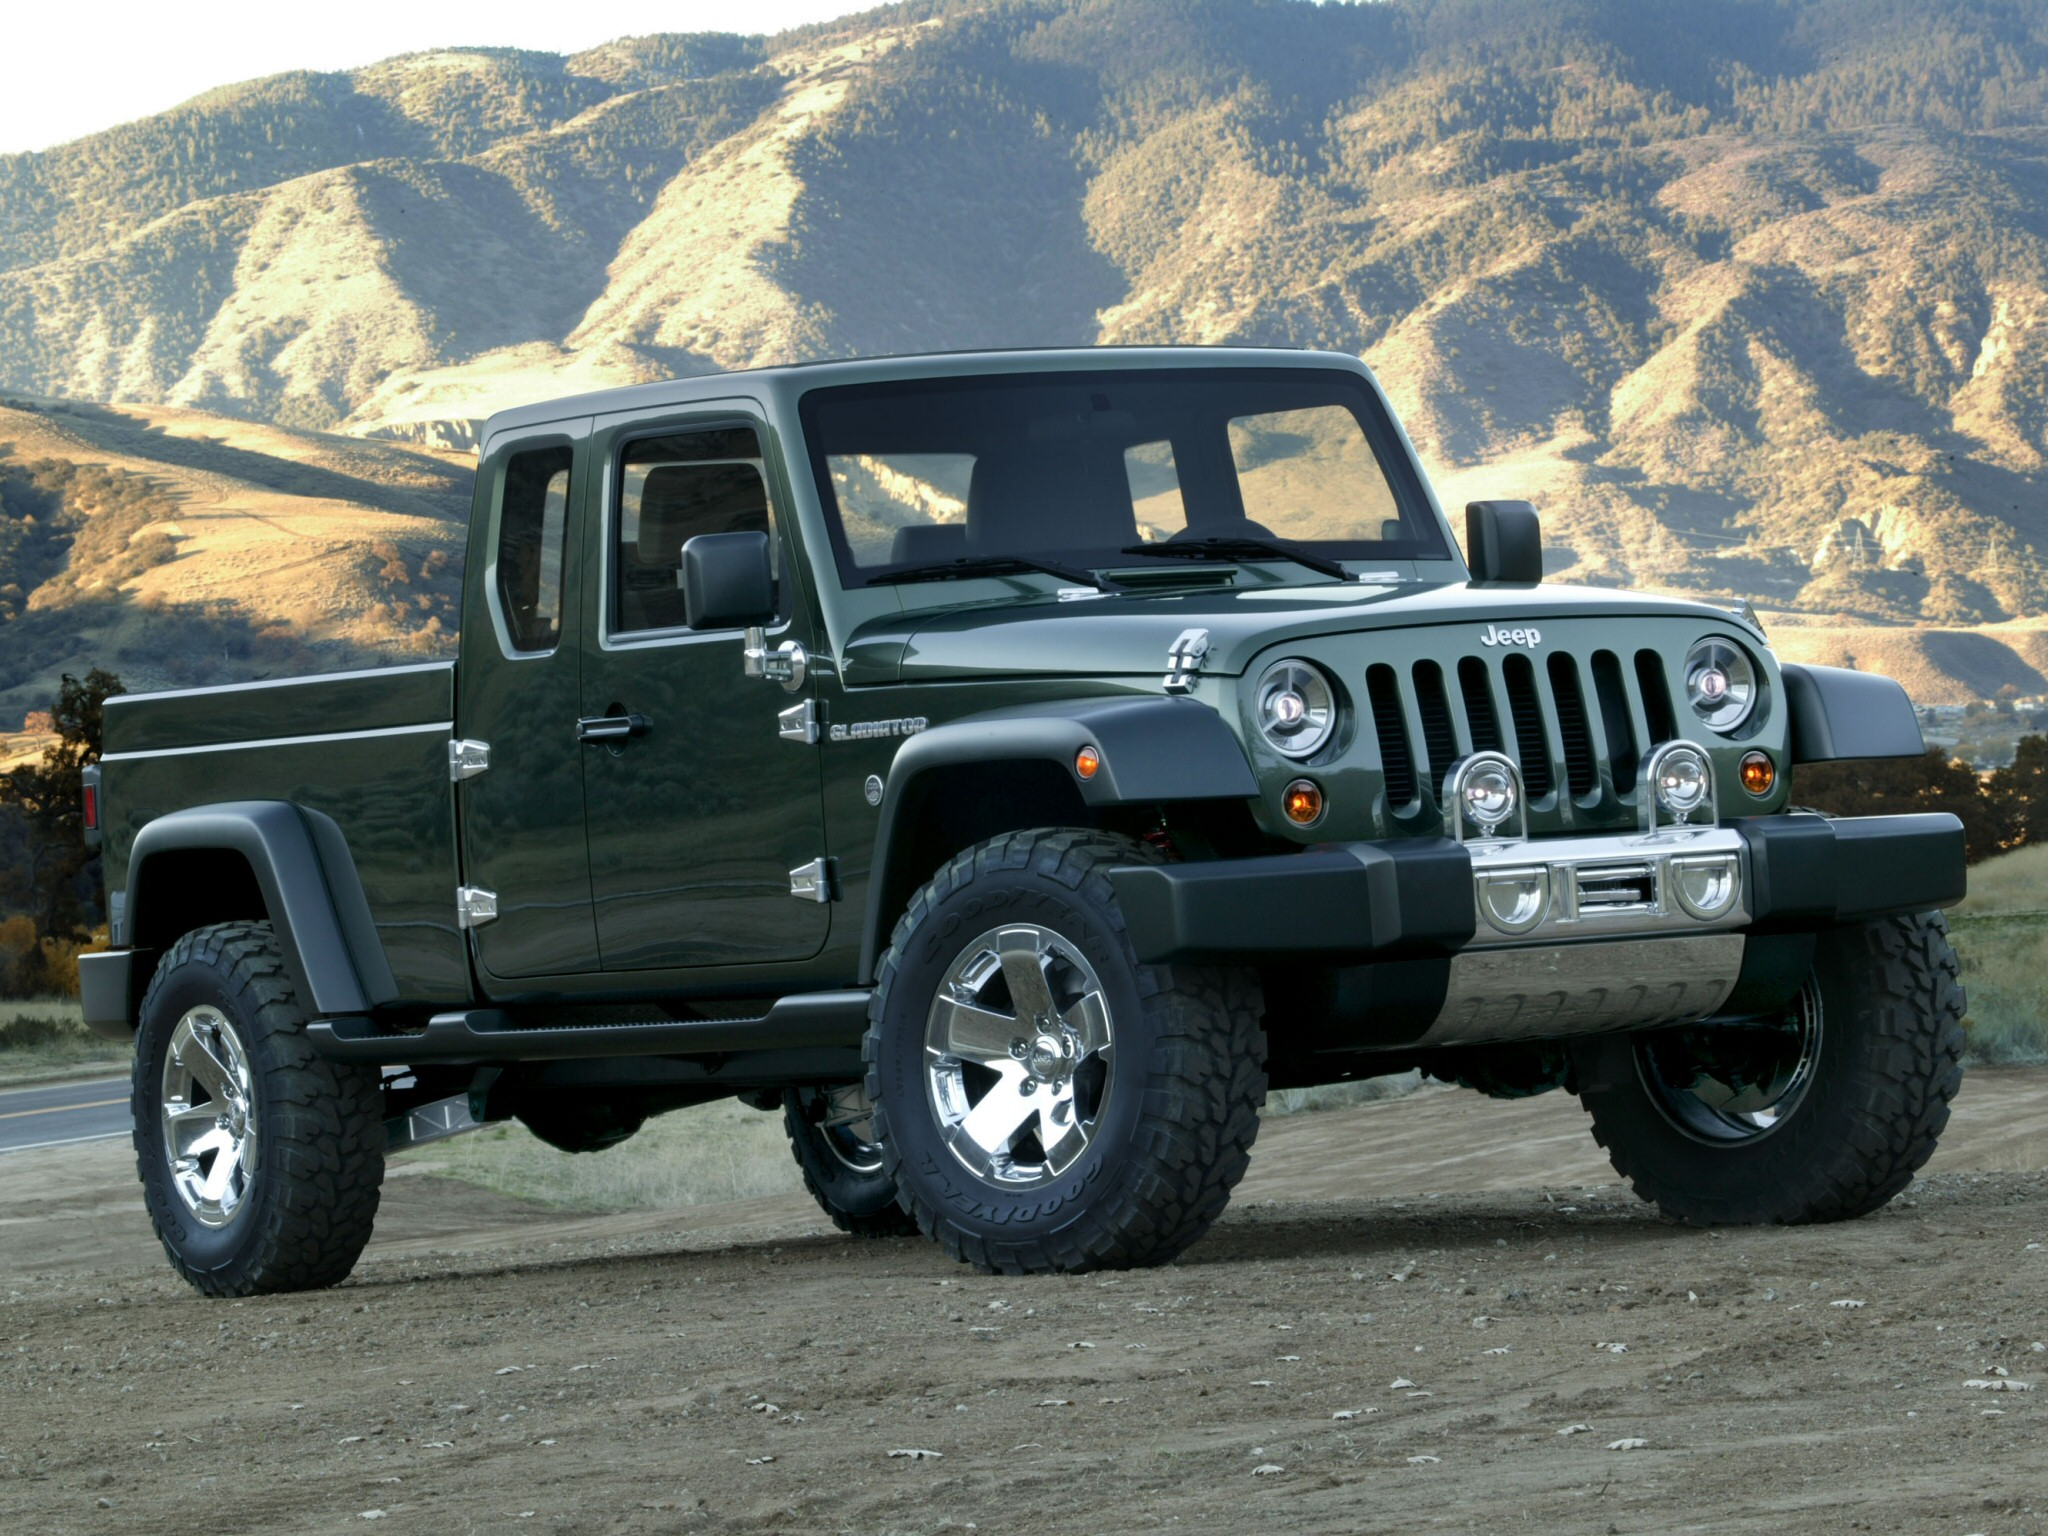 2006 Jeep Gladiator Concept offroad 4x4 truck wallpaper background 2048x1536